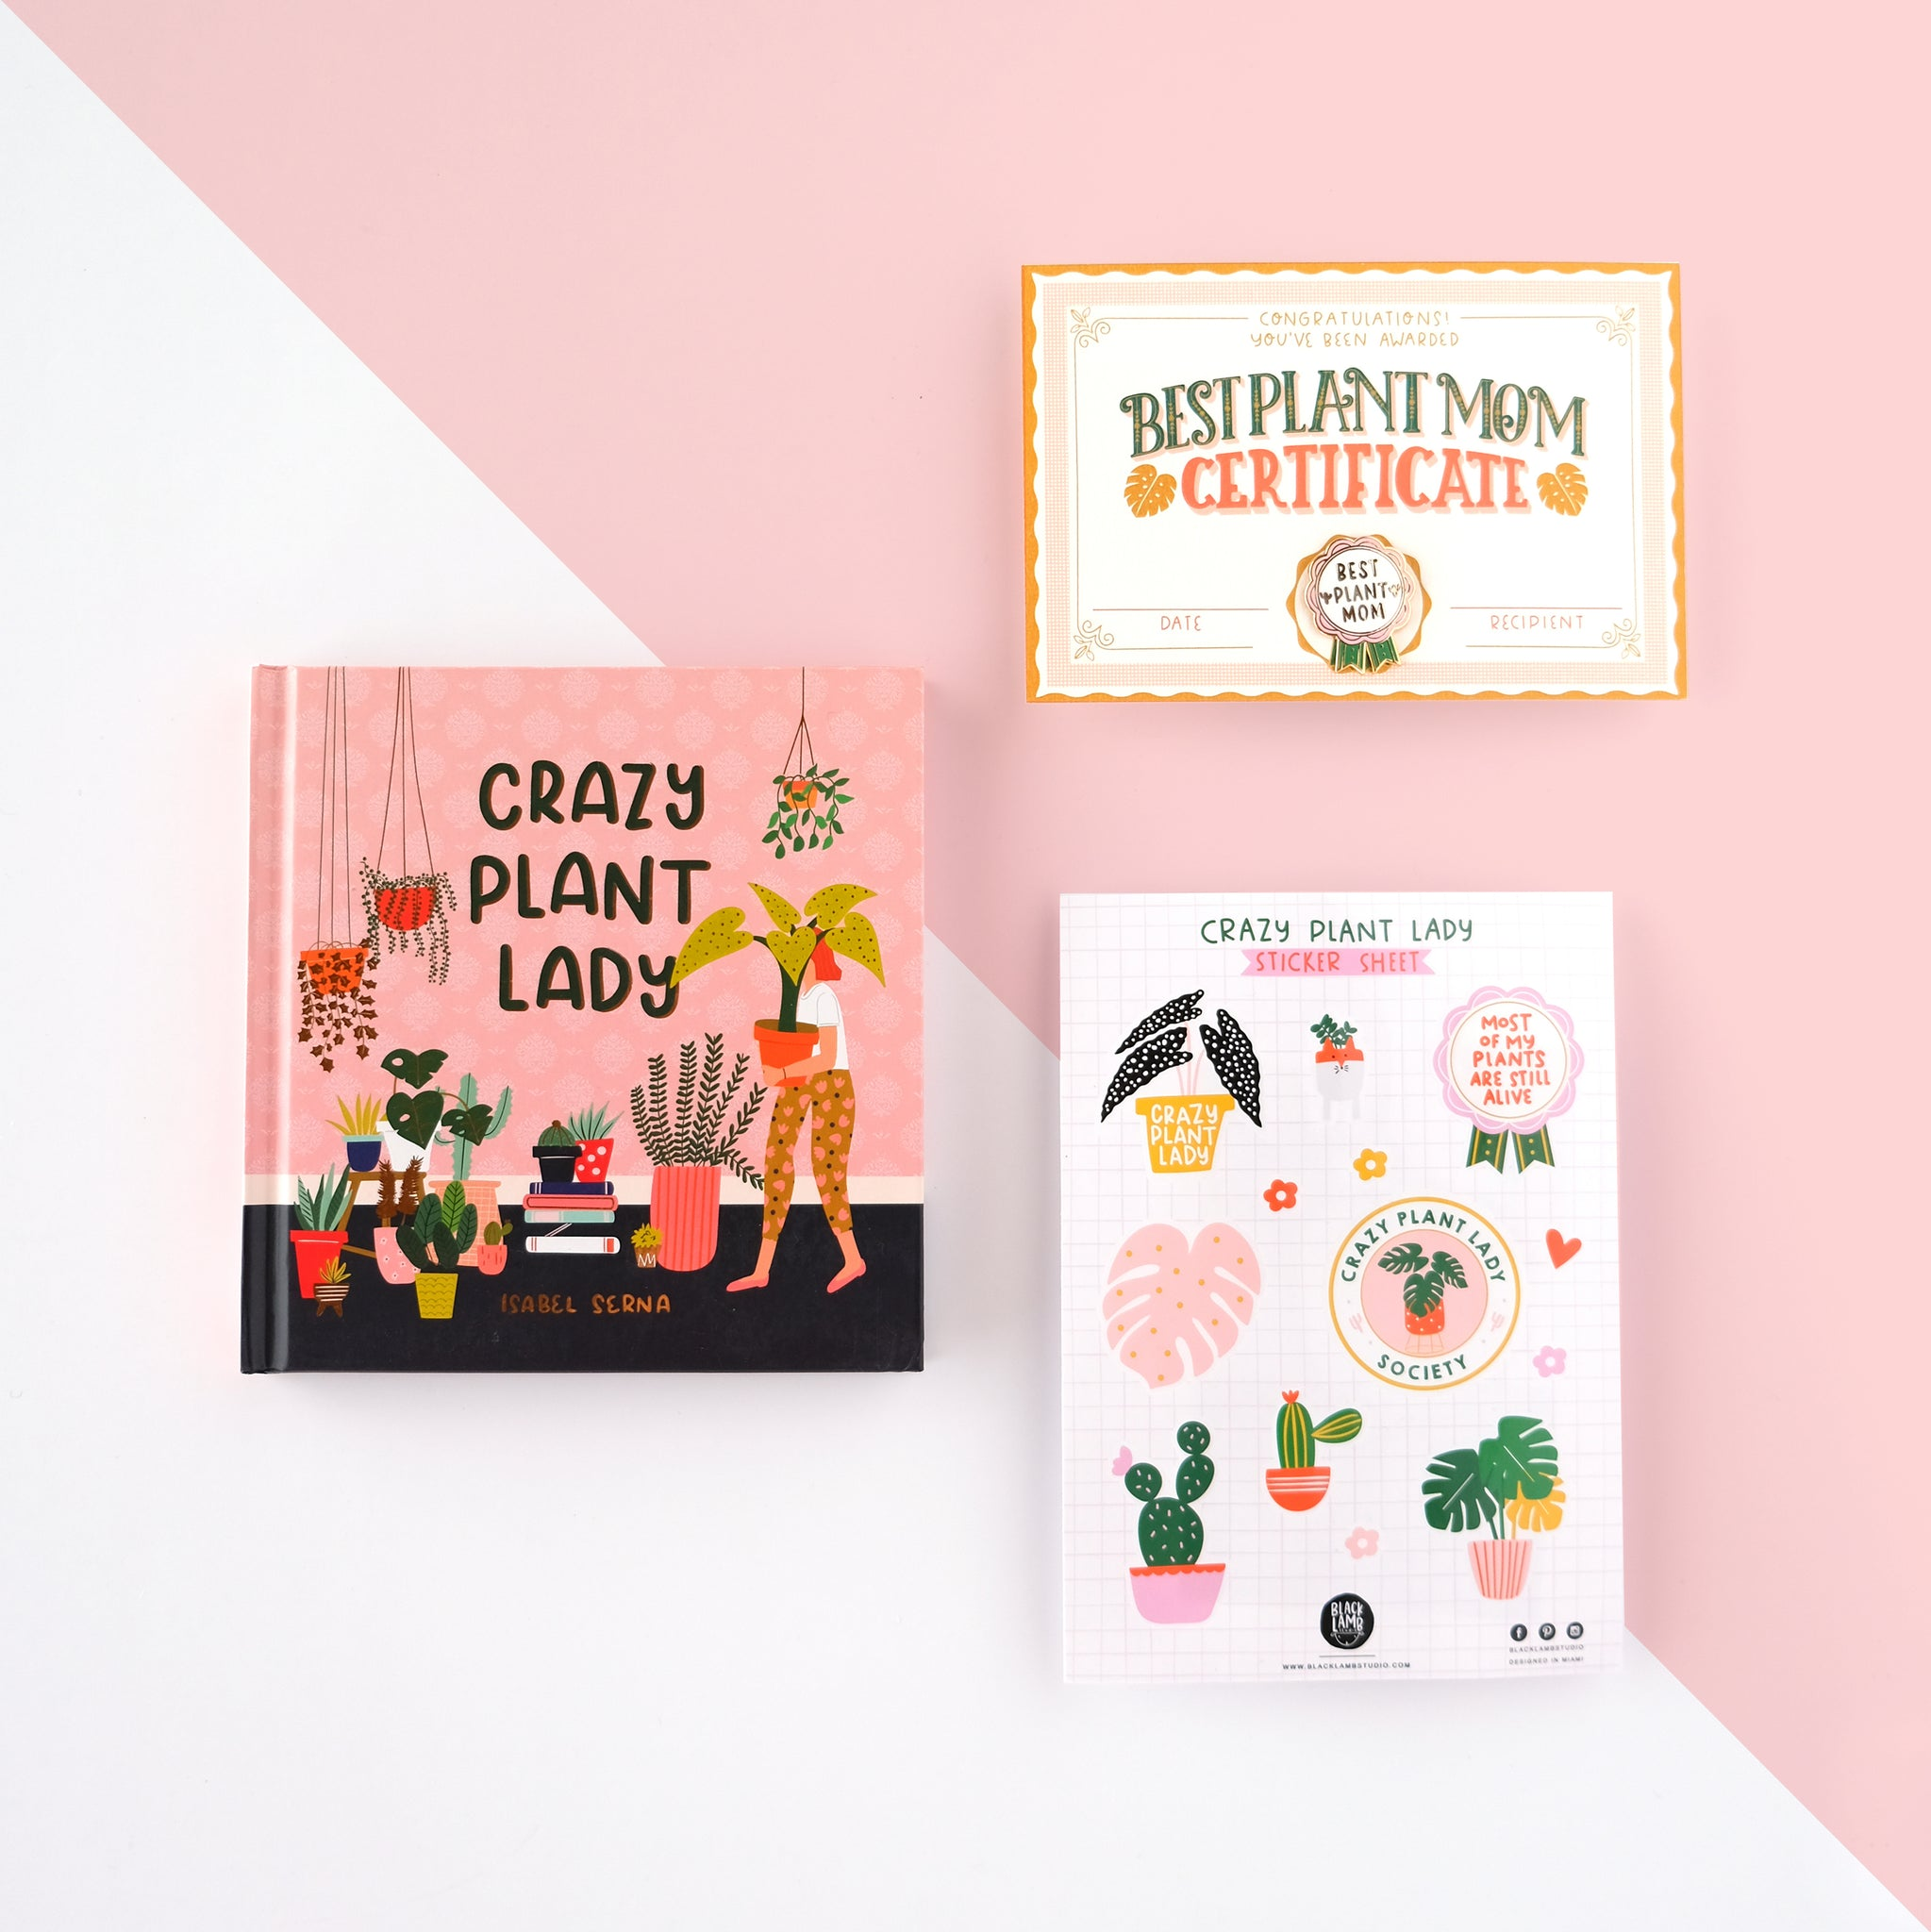 CRAZY PLANT LADY GIFT BOX 2